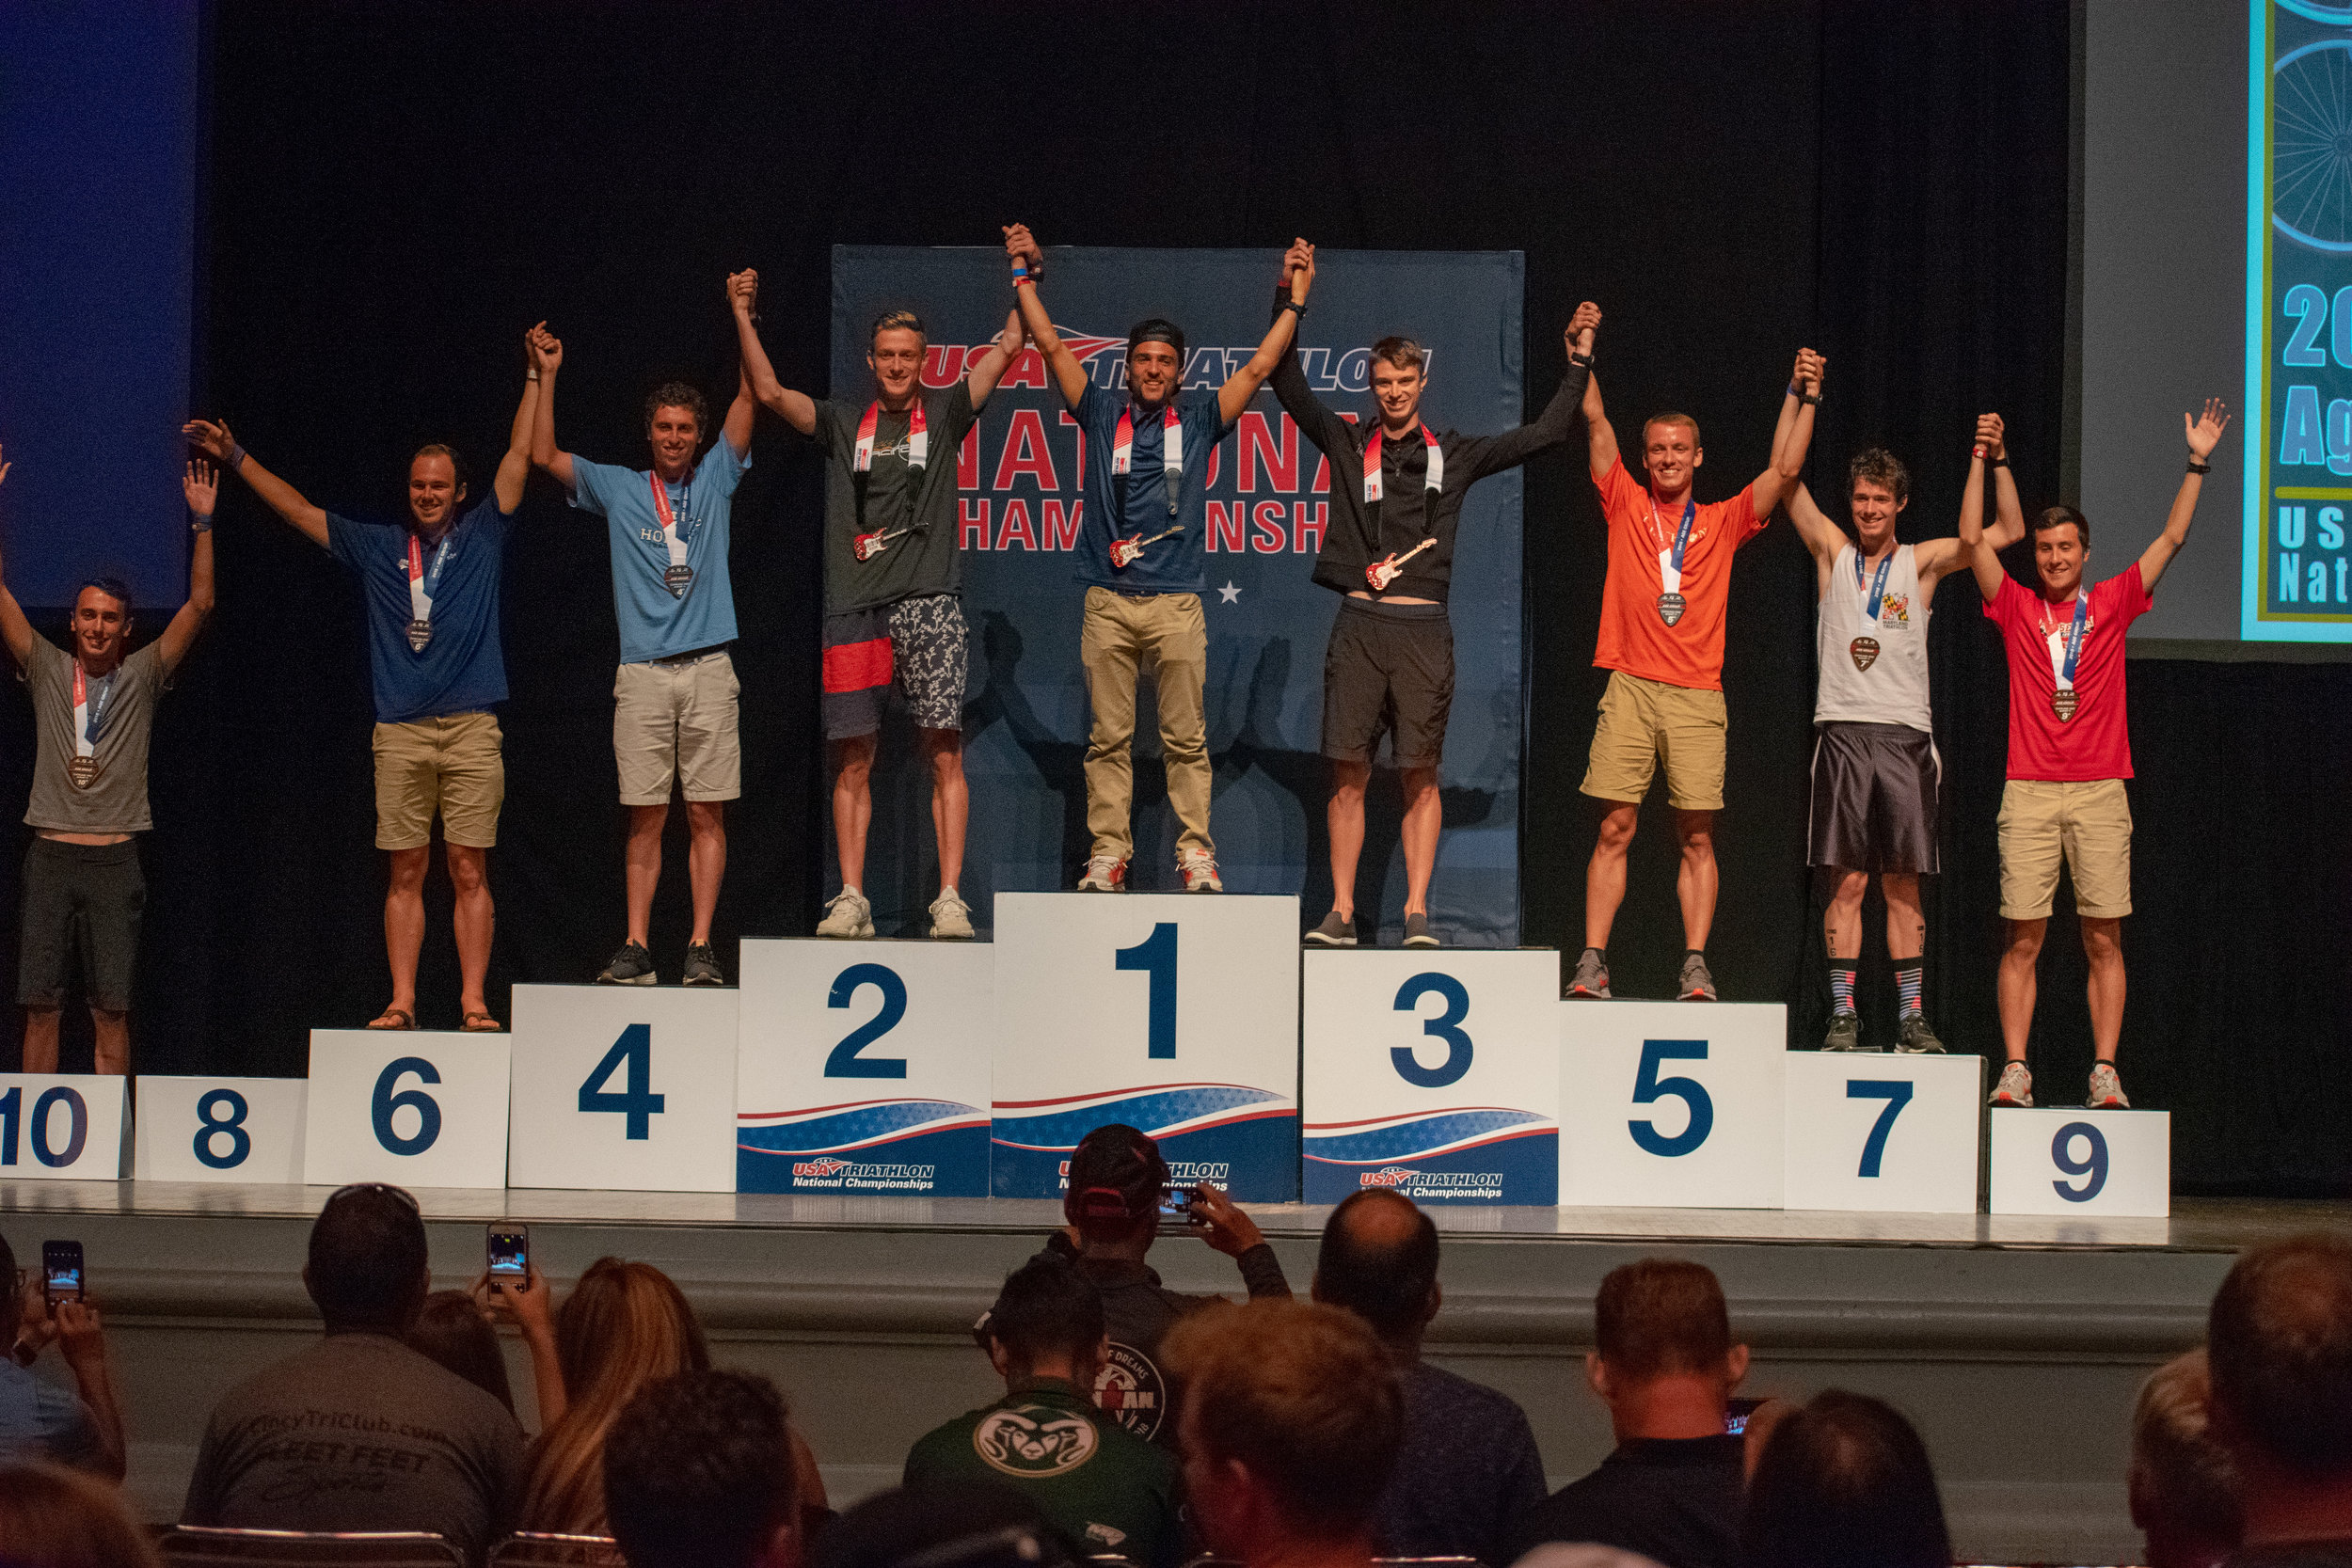 20-24 Age Group podium. (Peep fellow CLEMSON alum Jeff Case in 5th) (Also many good friends on this podium. Love these guys.) (Left to right: Tyler Woodward 10th, 8th missing, Matt Guenter 6th, Louis Levine 4th, Matt Murray 2nd, Me, Nick Noone 3rd, Jeff Case 5th, Andrew Frommer 7th, John Reed 9th)